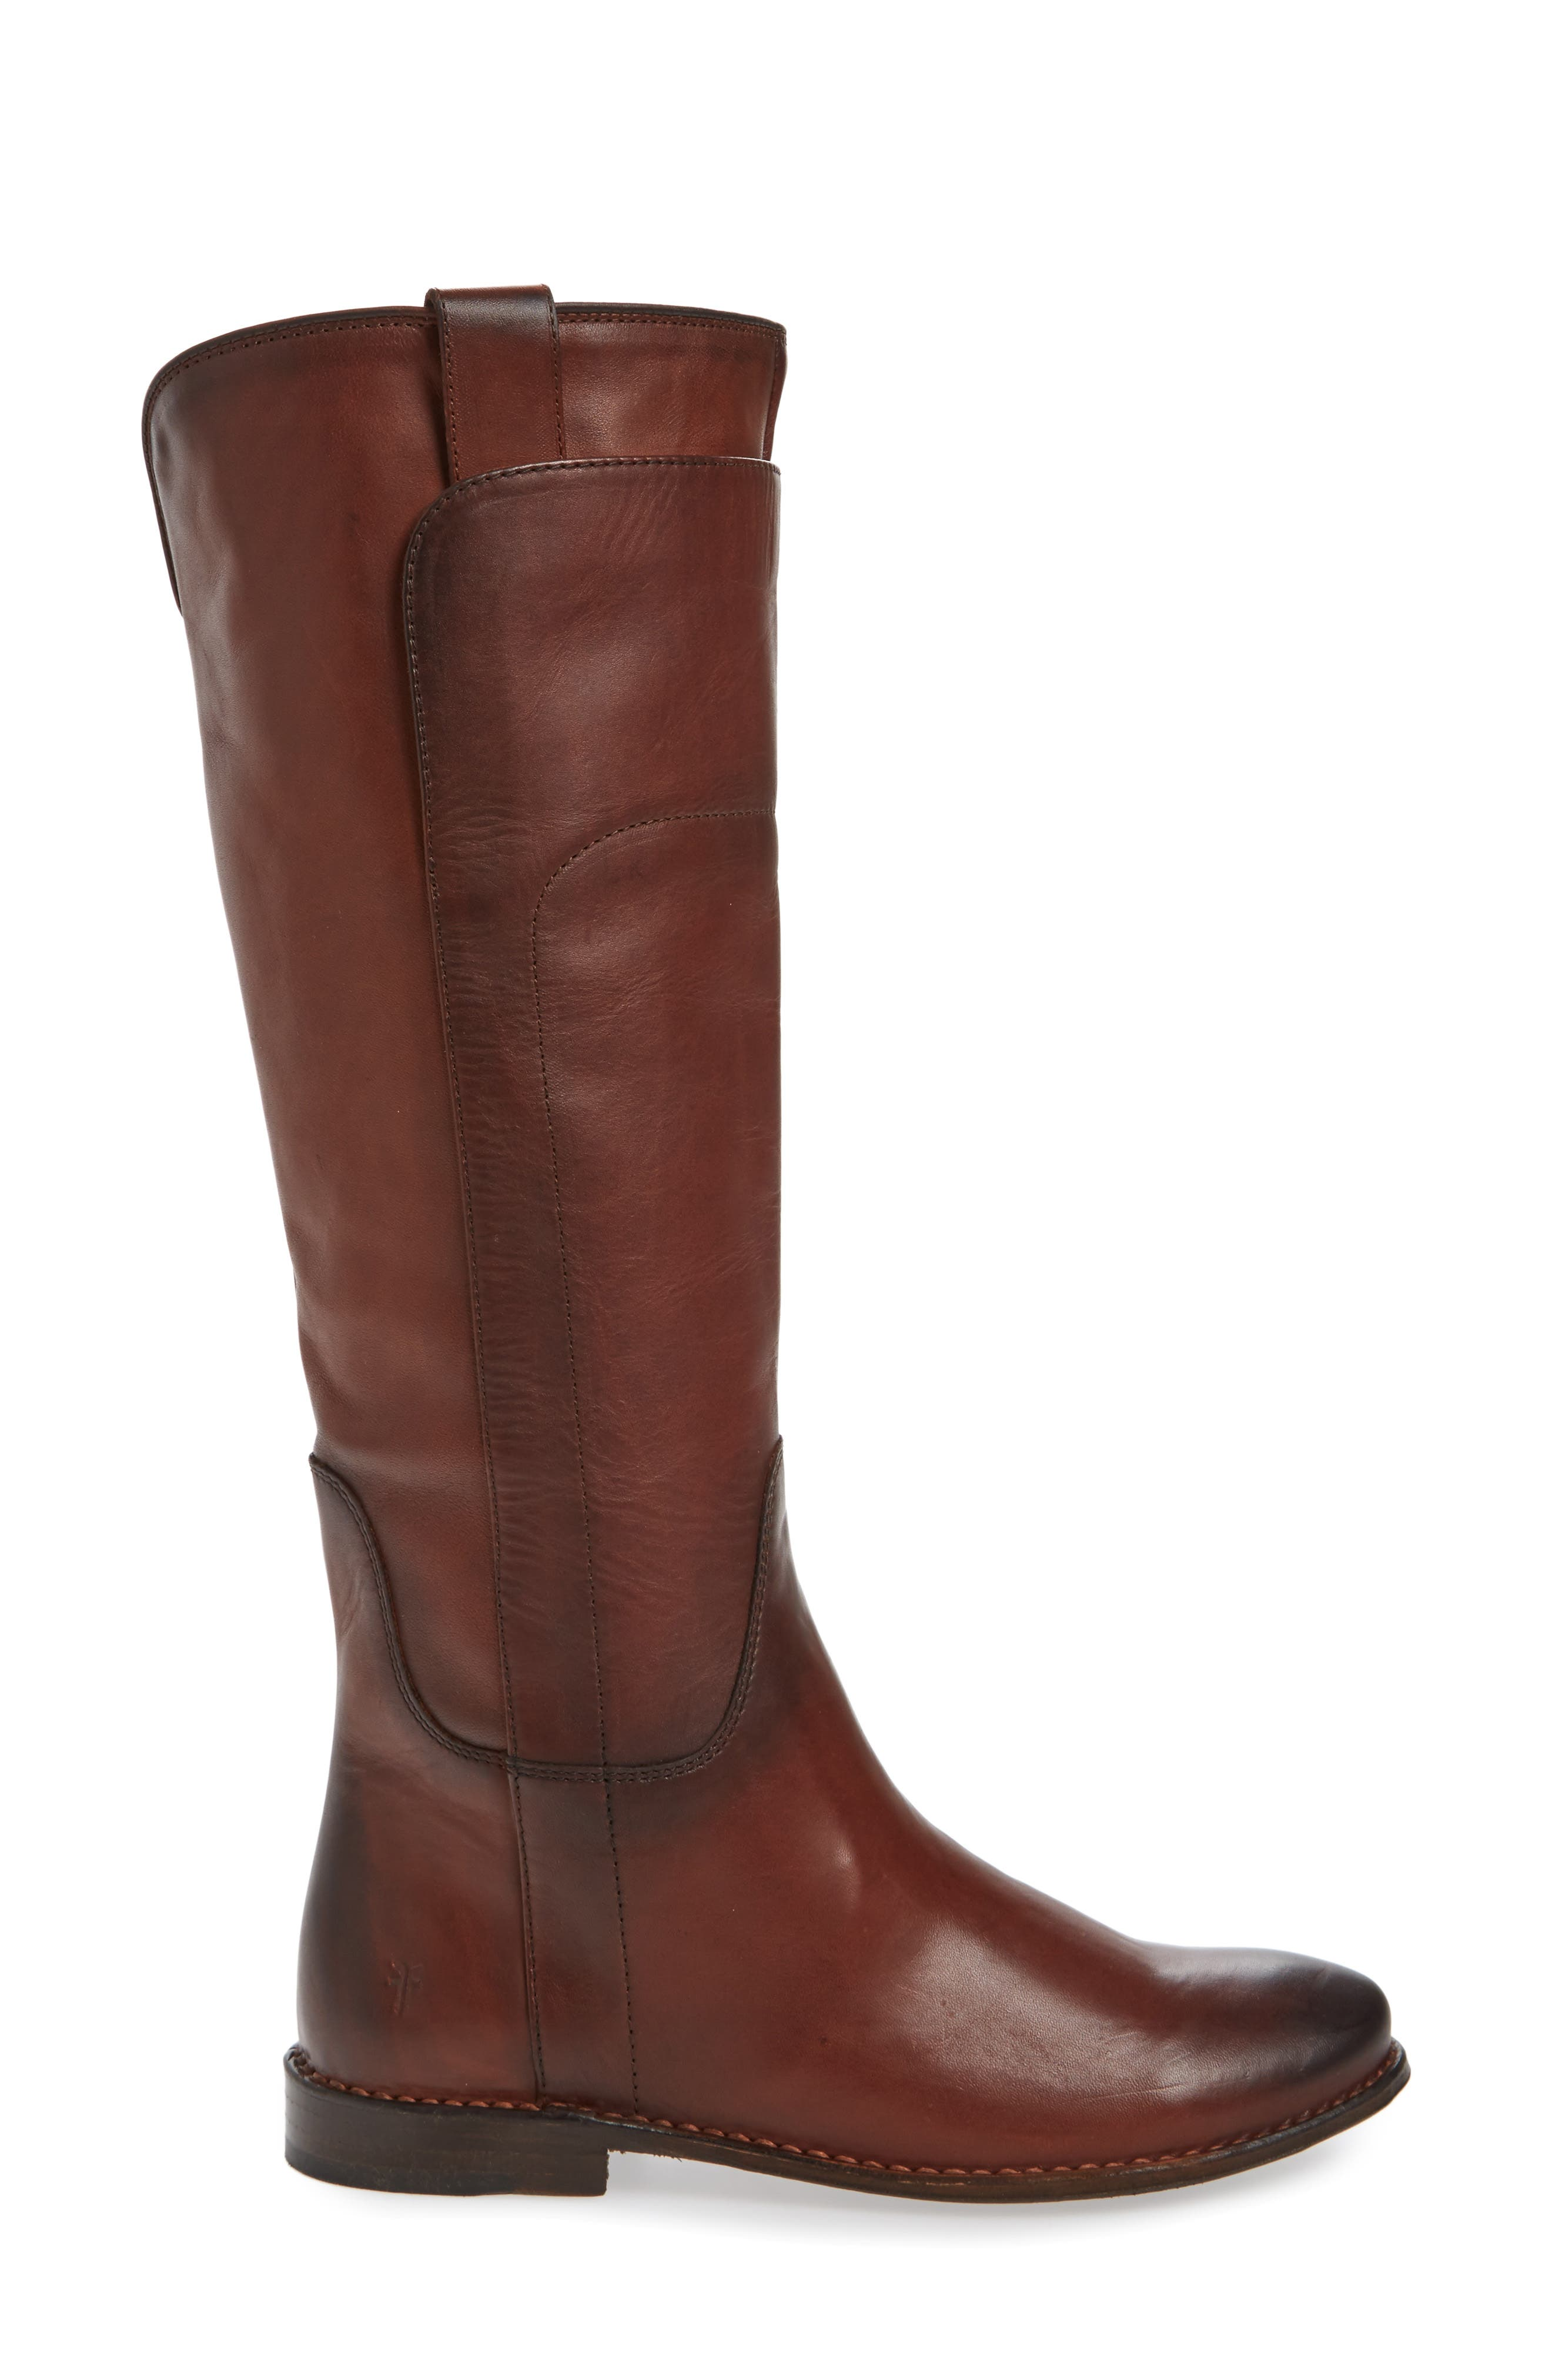 Alternate Image 3  - Frye Paige Tall Riding Boot (Women)